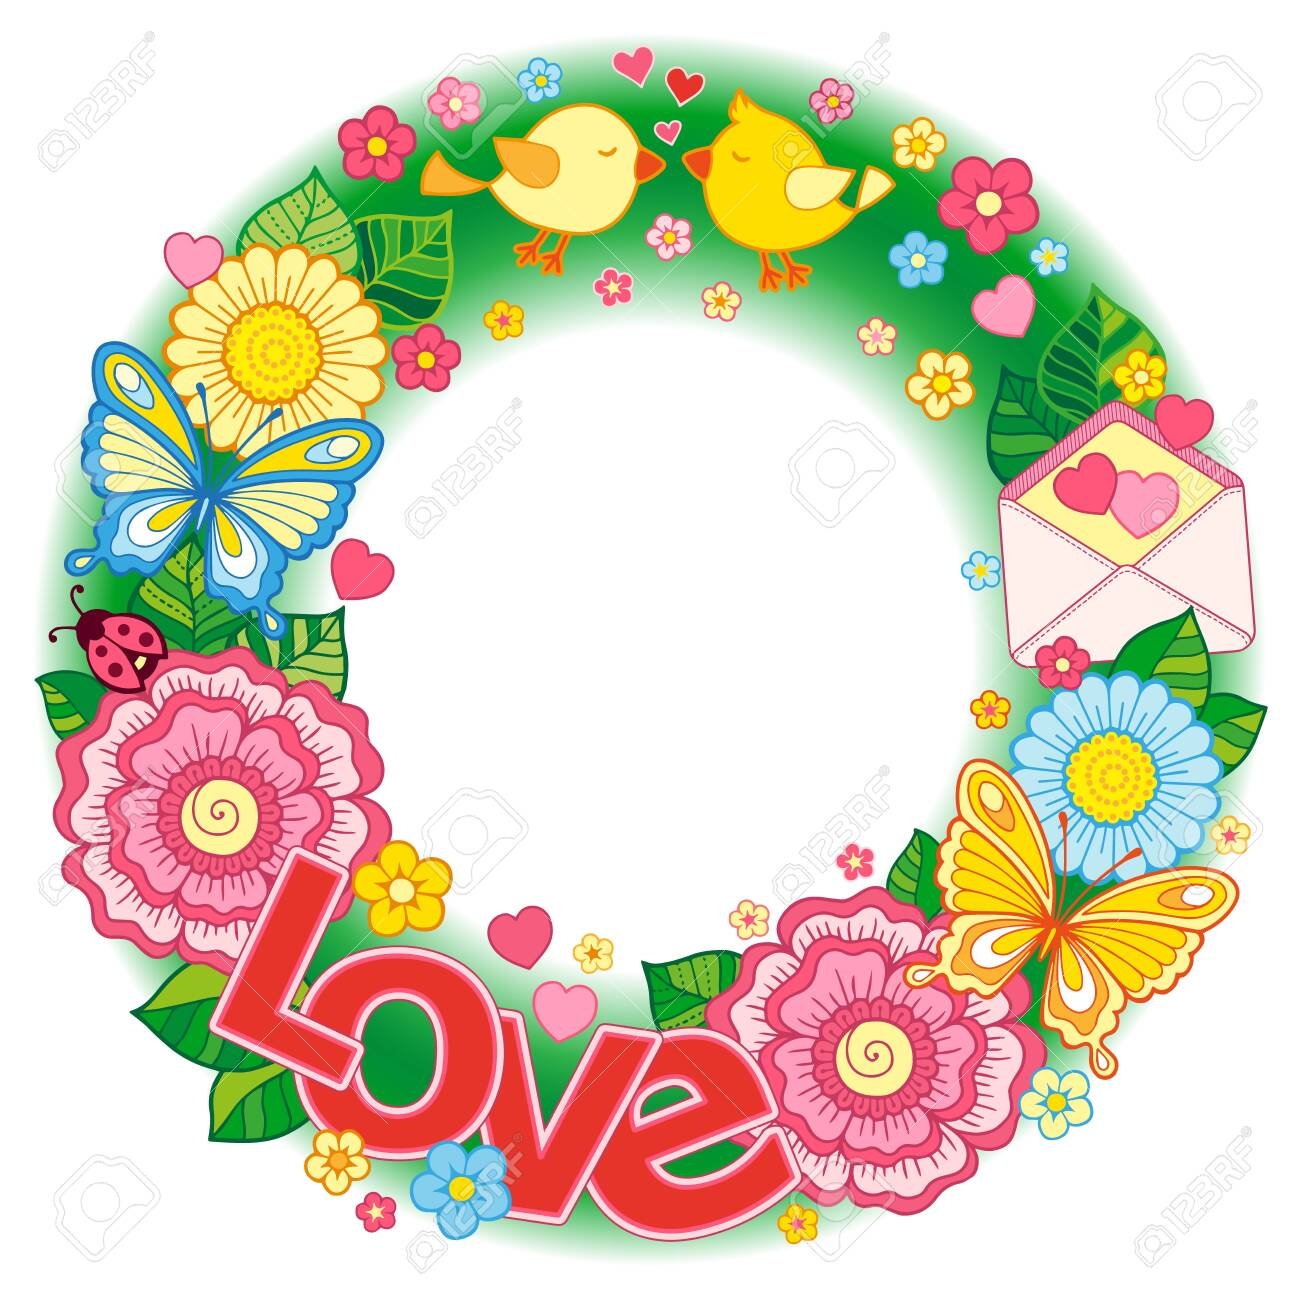 Valentine's Day card. Wedding invitetion. Round shape made of Abstract flowers, butterflies, birds kissing and the word love. - 142159826